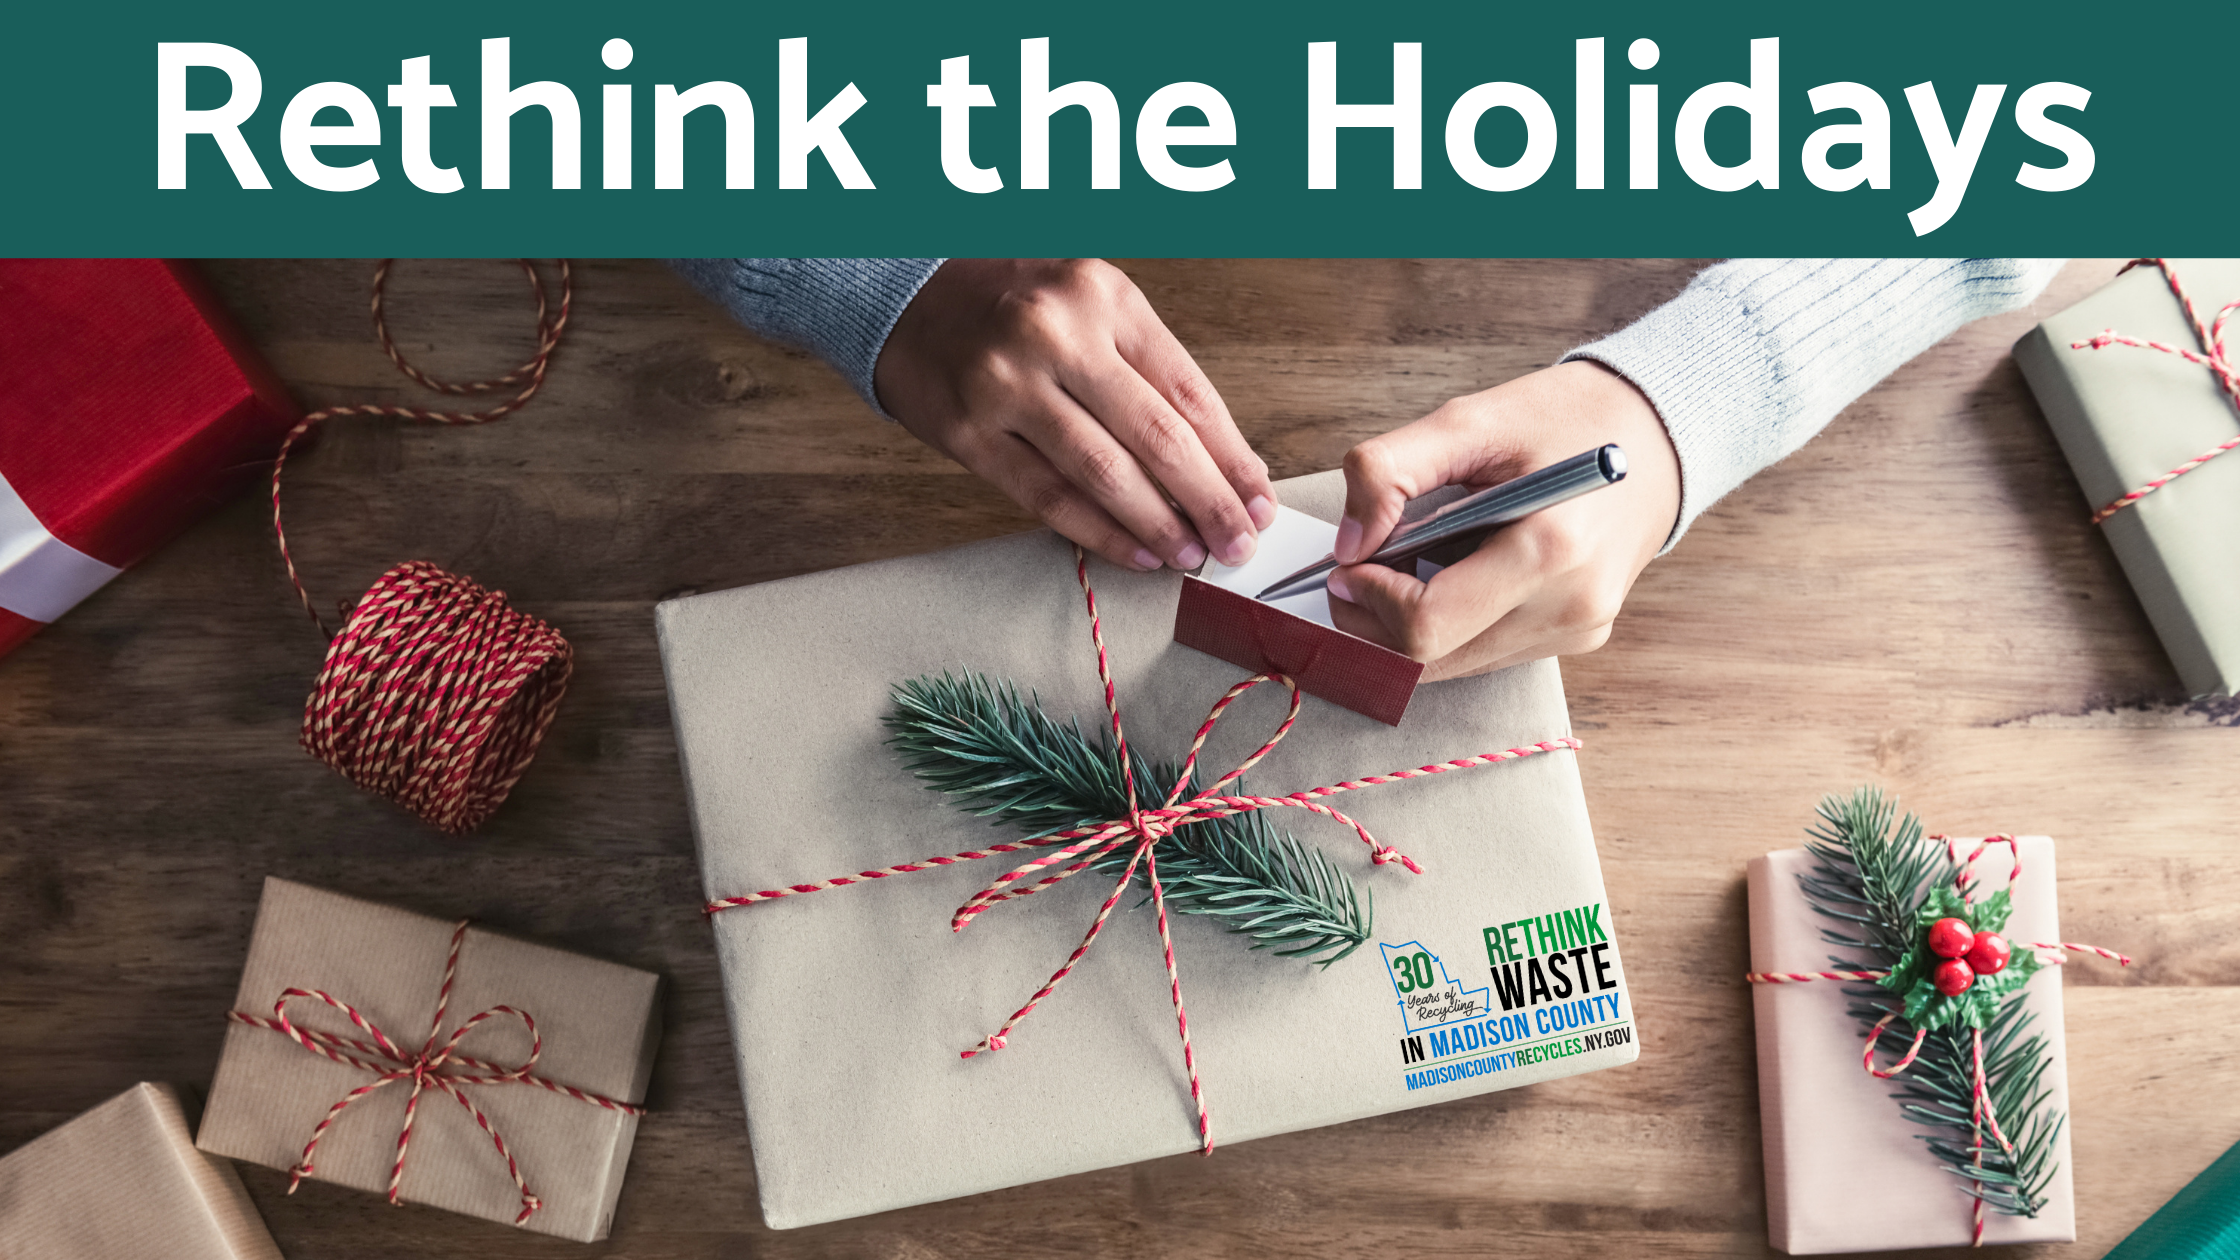 Website Banner for Rethinking the Holidays